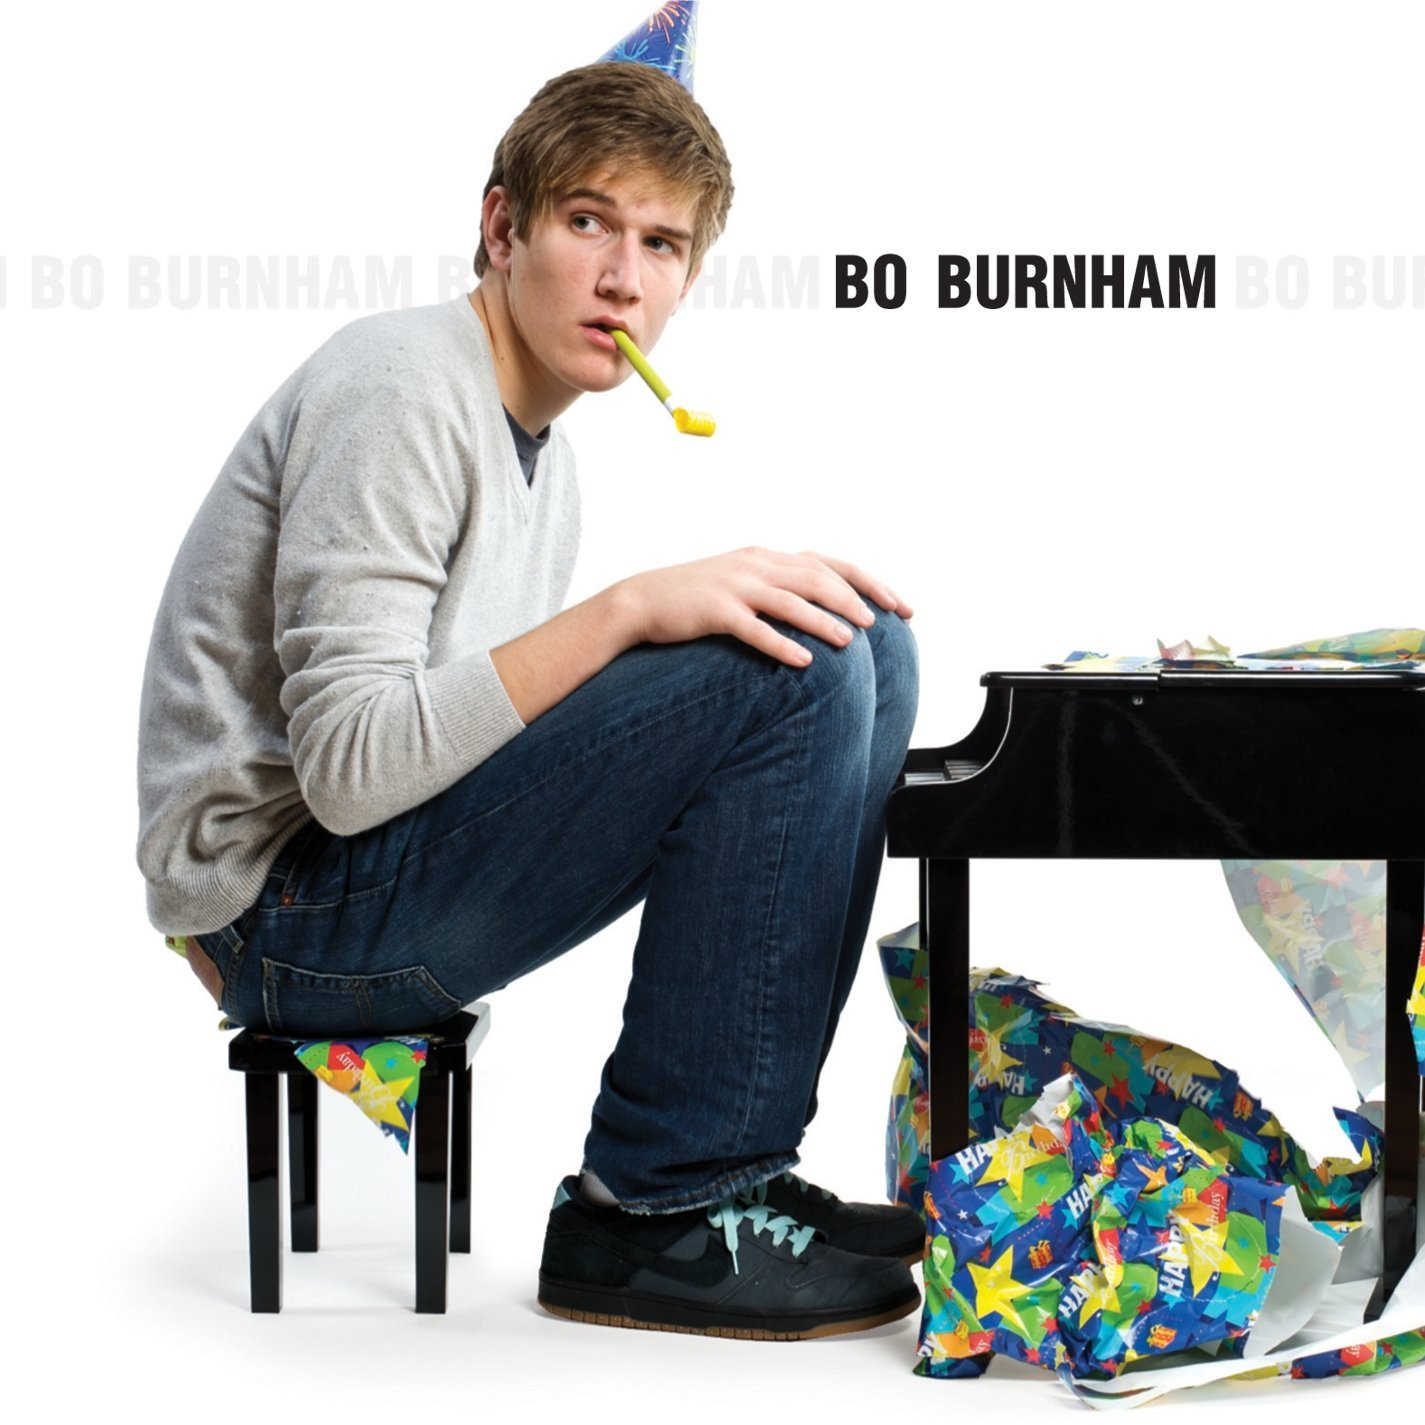 Bo Burnham first album